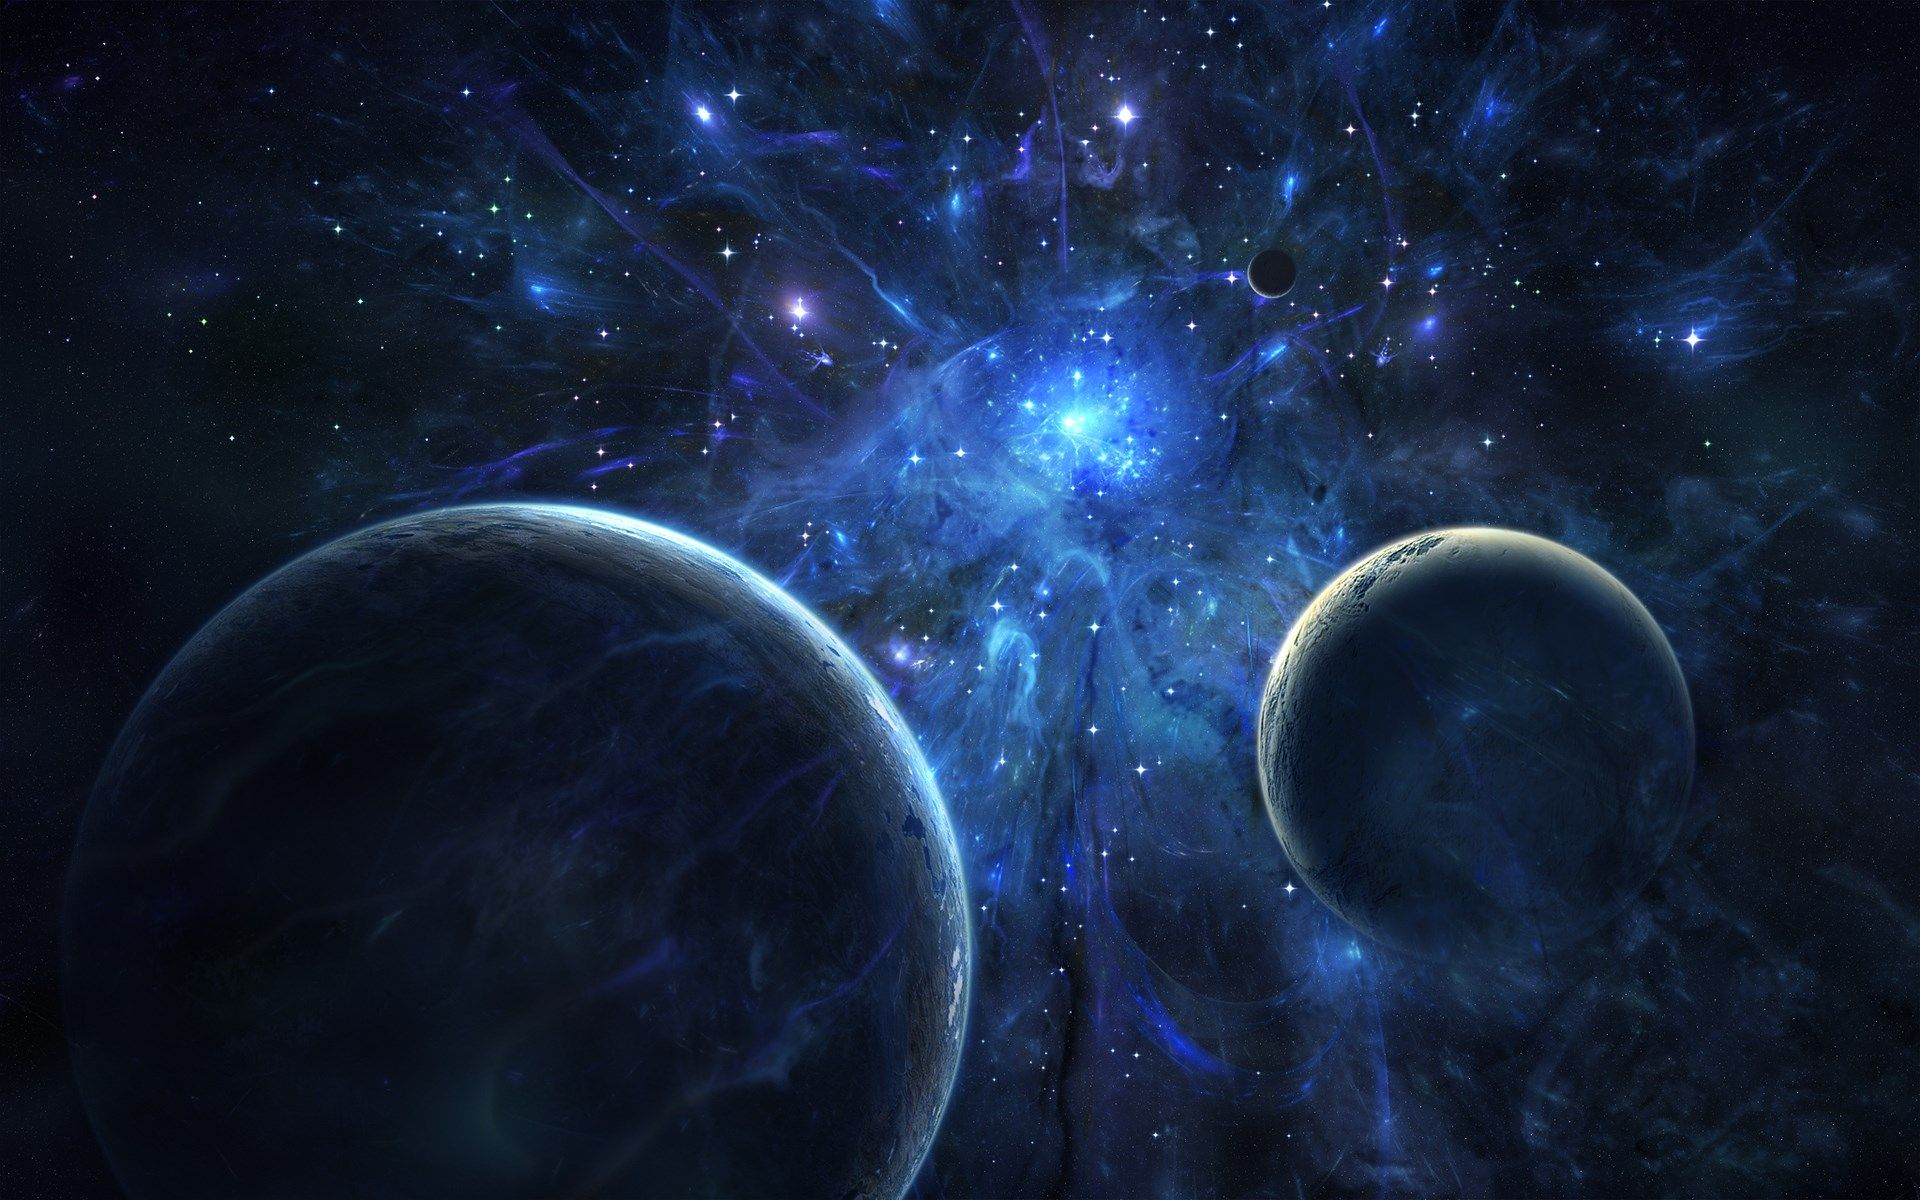 space free wallpapers themed Outer space images, Space